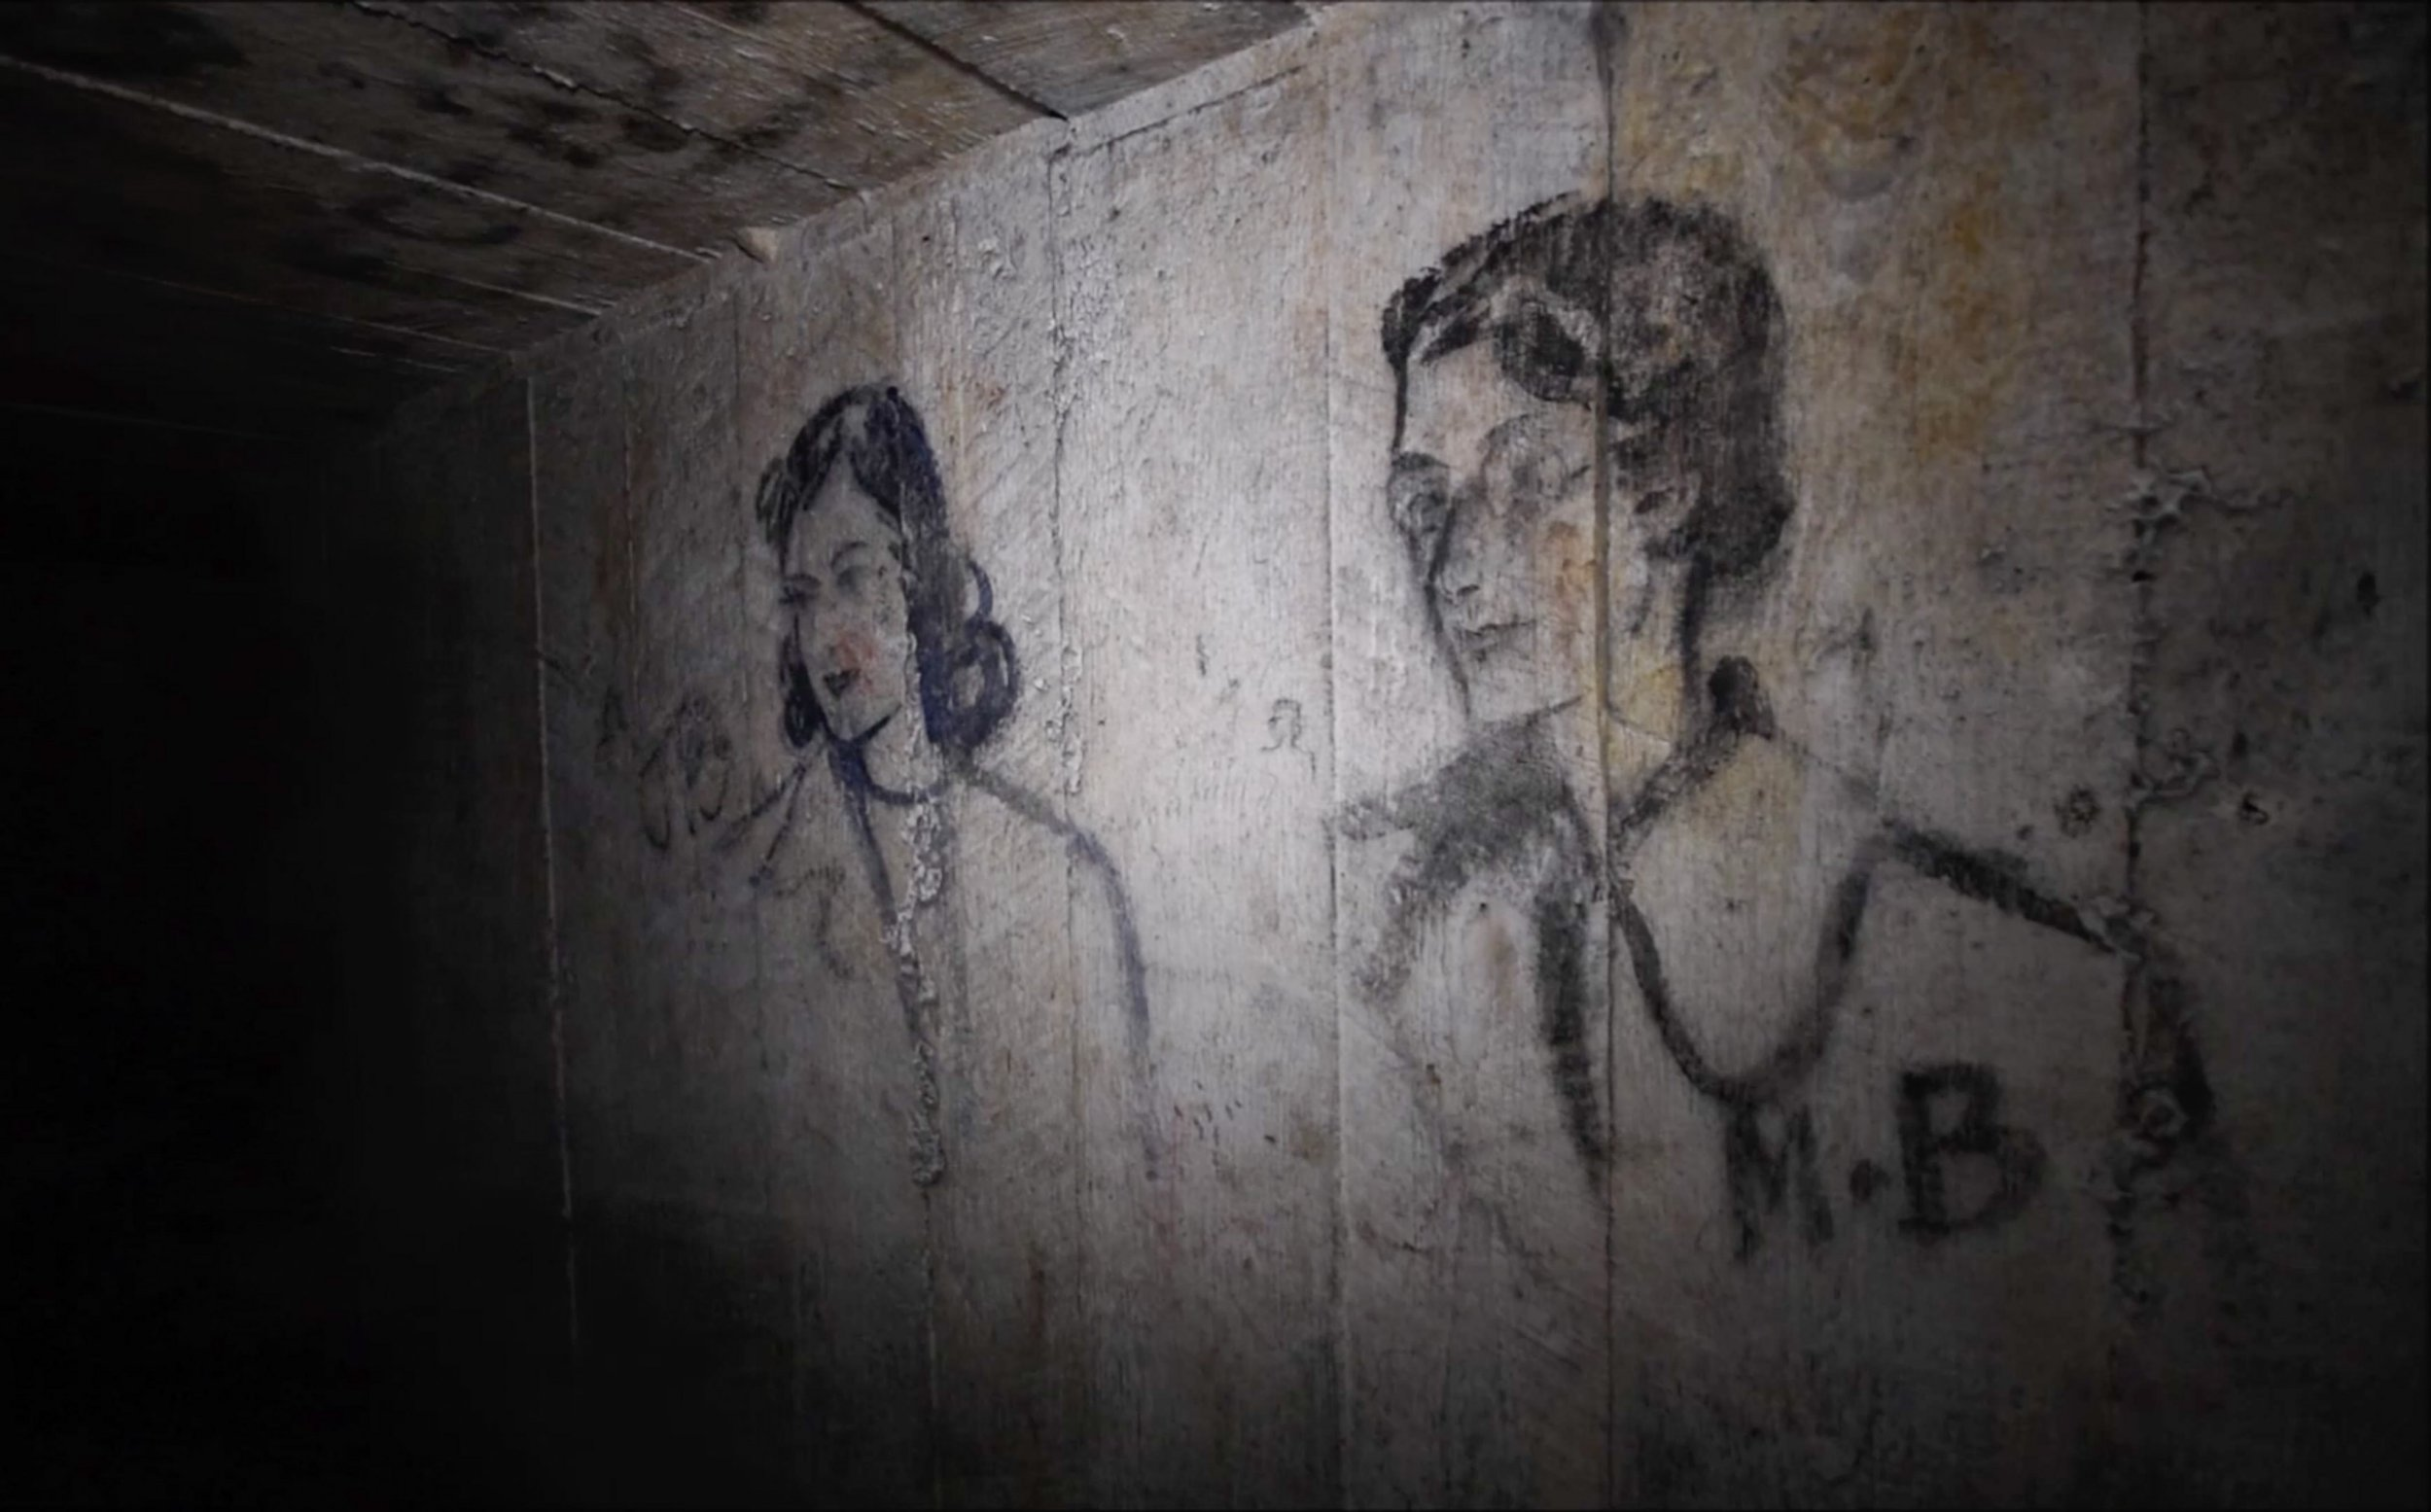 MERCURY PRESS. 20/09/18. Pictured: Coal drawings on the walls onside the WWII bunker. An urban explorer has revealed striking footage of portraits, he believes date back to WWII, sketched over the walls of a secret wartime bunker. Chris Halliwell, 31, had heard whispers of the drawings and decided he needed to see them for himself, dedicating three days of research to finding the entrance to the bomb shelter. Despite all his research, the dad of four was stunned as he wandered through a mile of haunting tunnels to find the walls were plastered with coal portraits of characters from an era long past. SEE MERCURY COPY. Photo Credit: CJ Urbex/Mercury Press